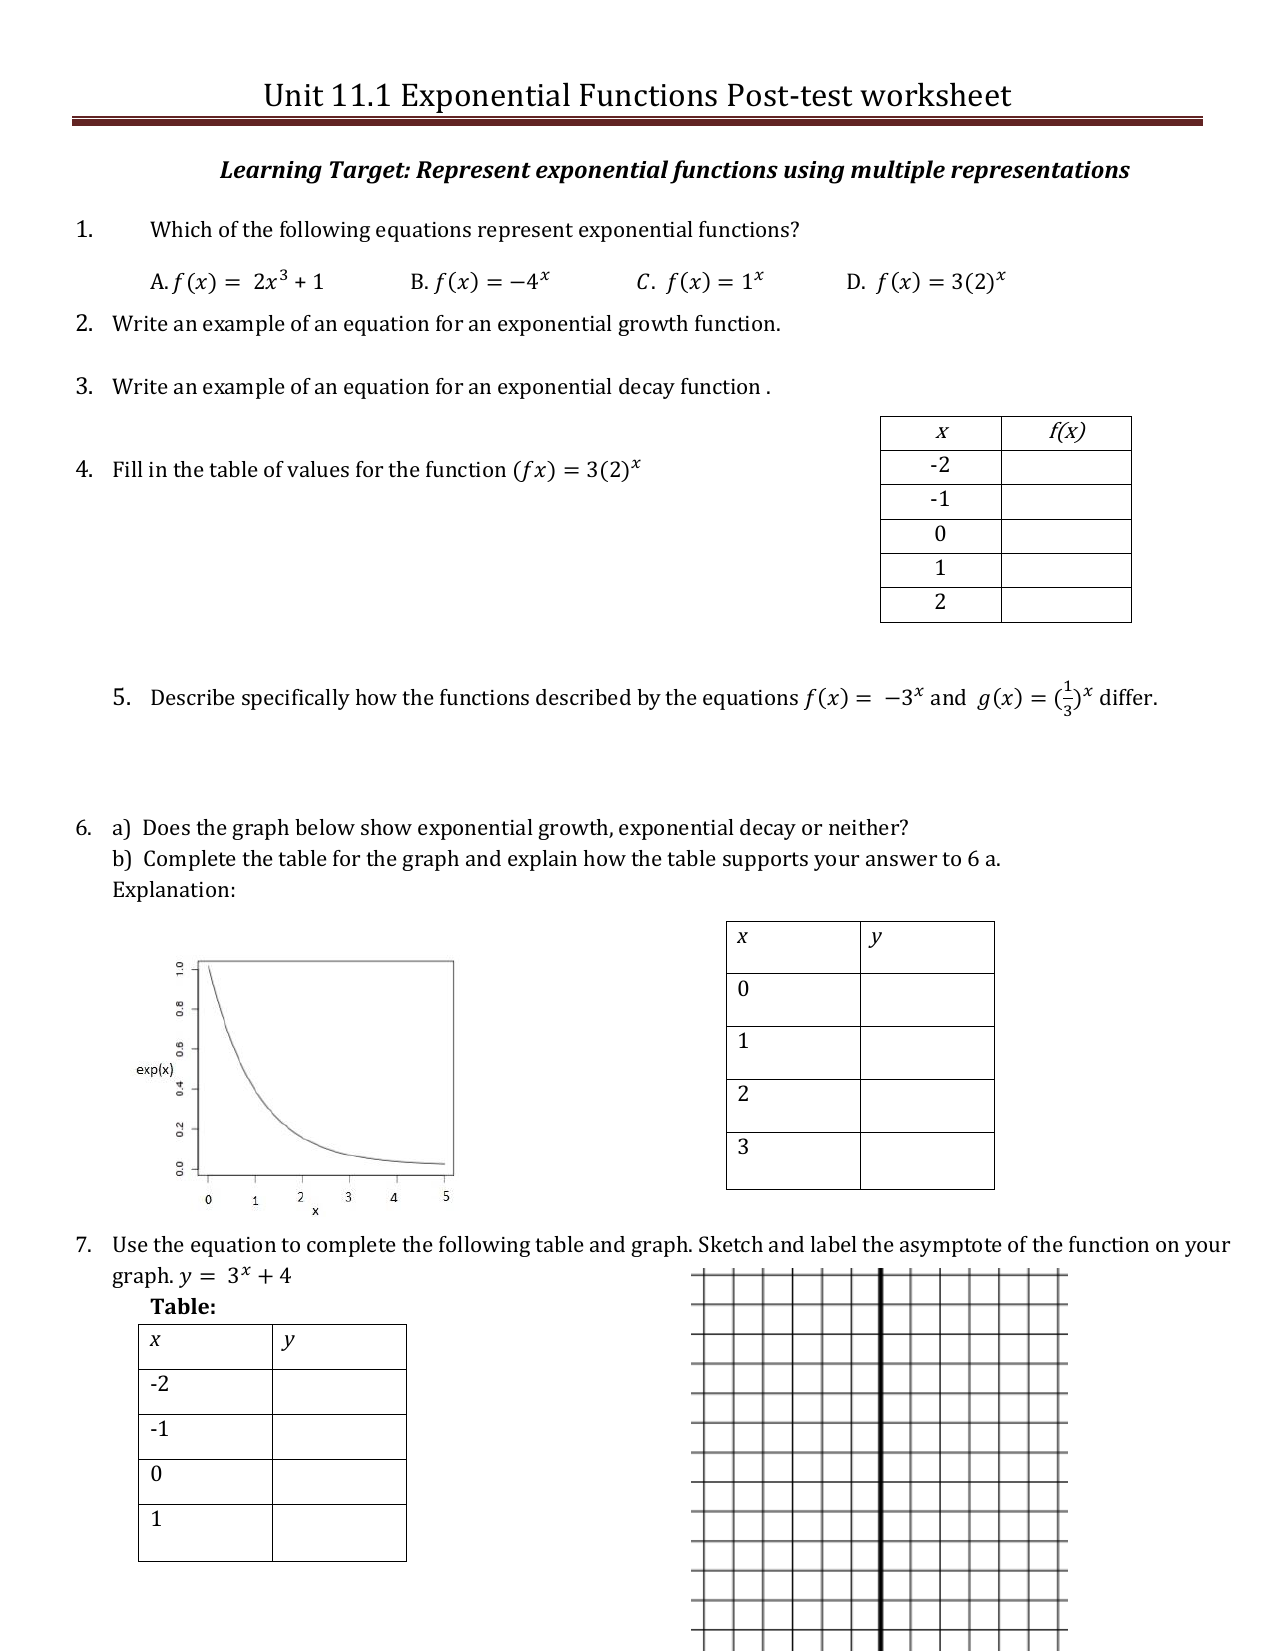 Unit 11 1 Post test Worksheet Exponential Functions